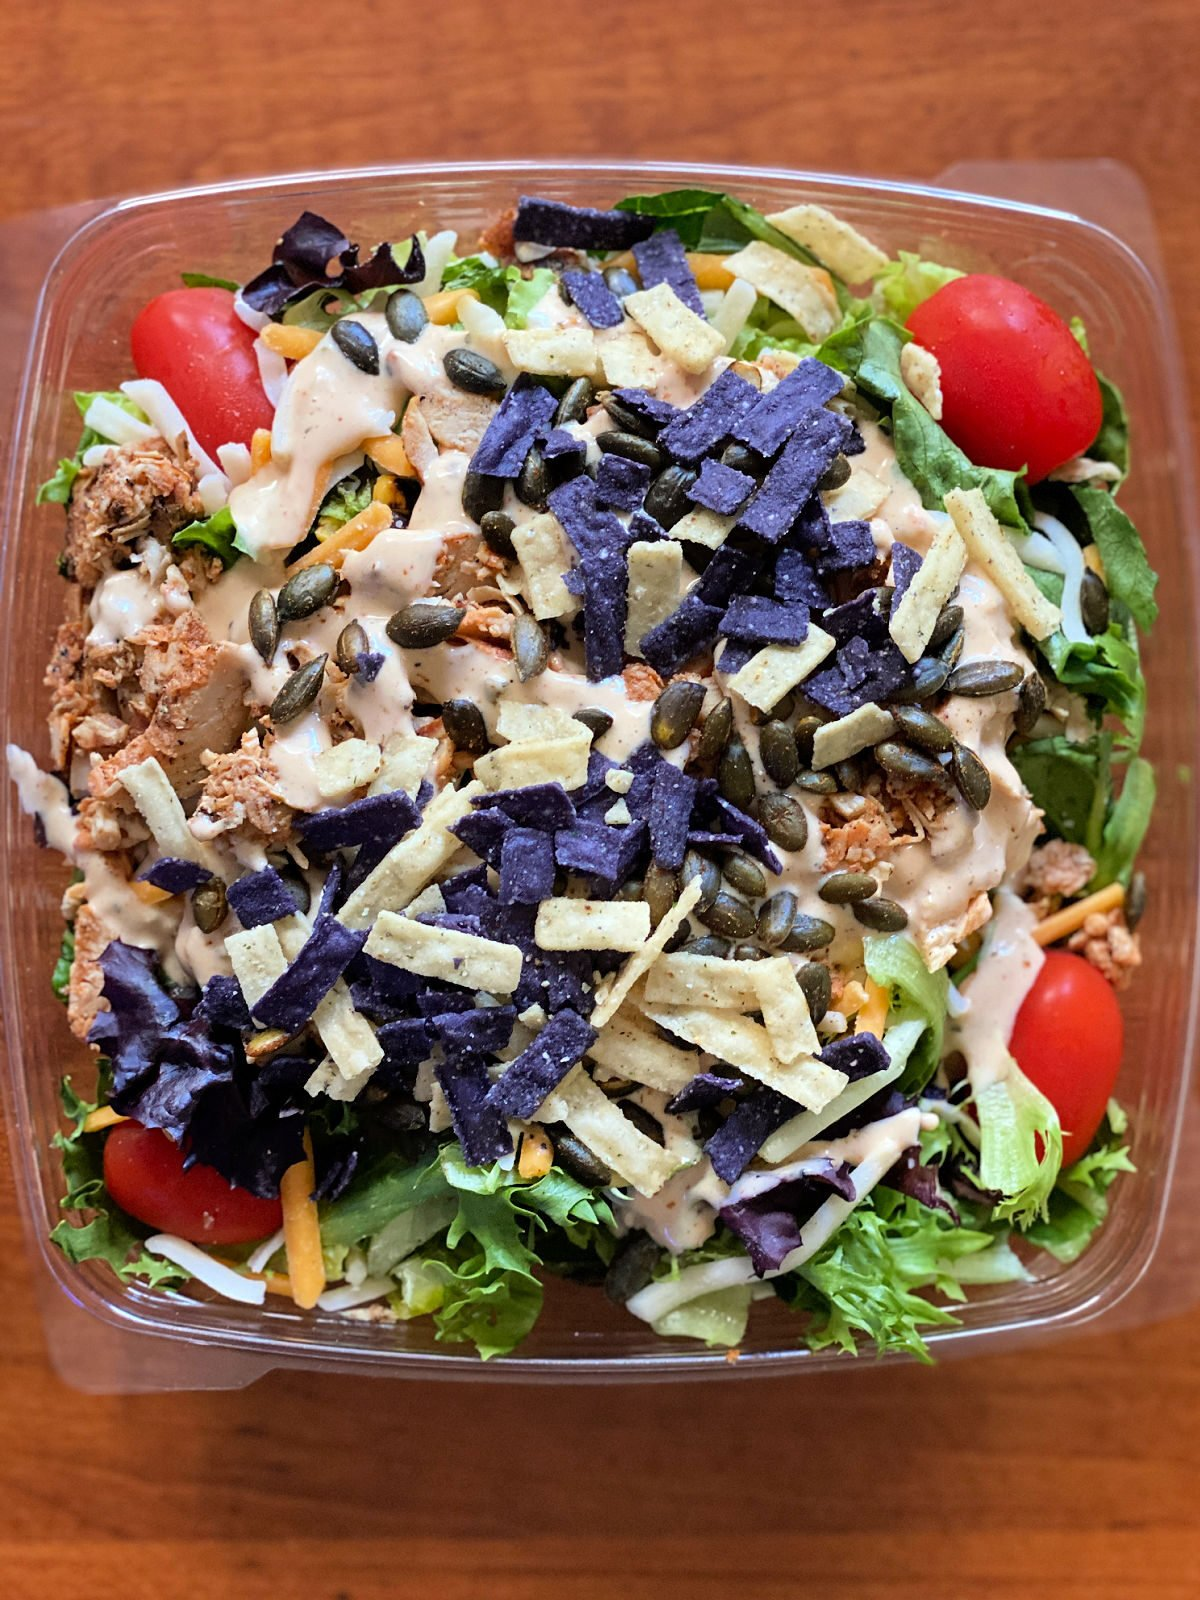 Chick-Fil-A's Southwest Salad topped with tortilla chips and salad dressing.